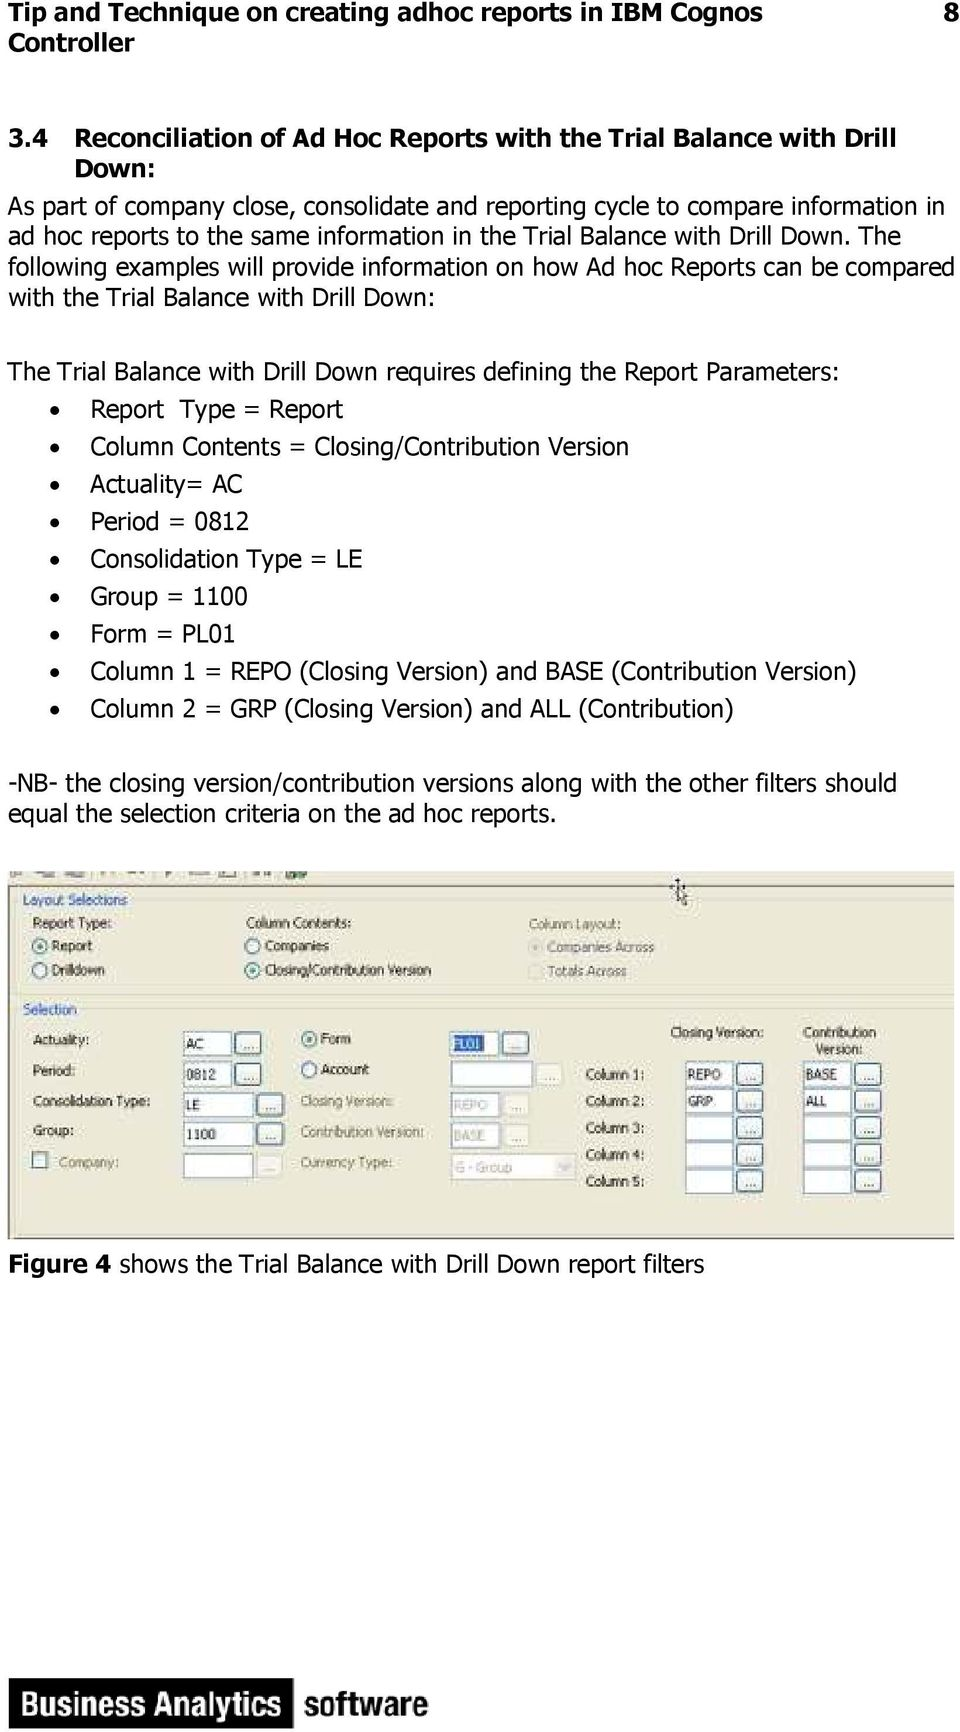 The following examples will provide information on how Ad hoc Reports can be compared with the Trial Balance with Drill Down: The Trial Balance with Drill Down requires defining the Report